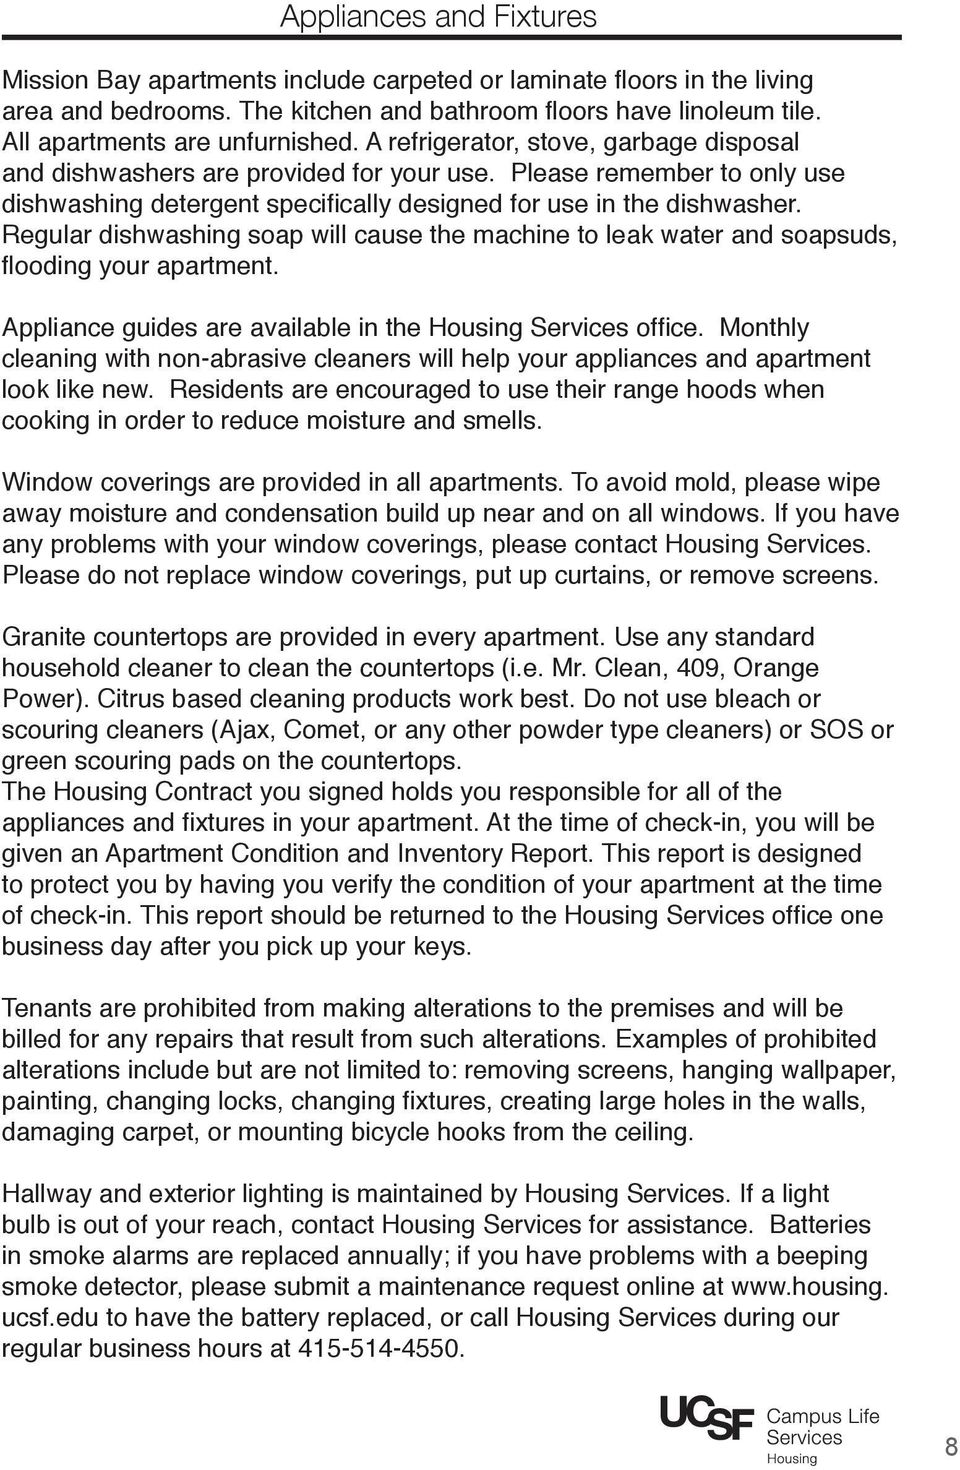 Welcome to Mission Bay! Housing Services Tenant Handbook - PDF